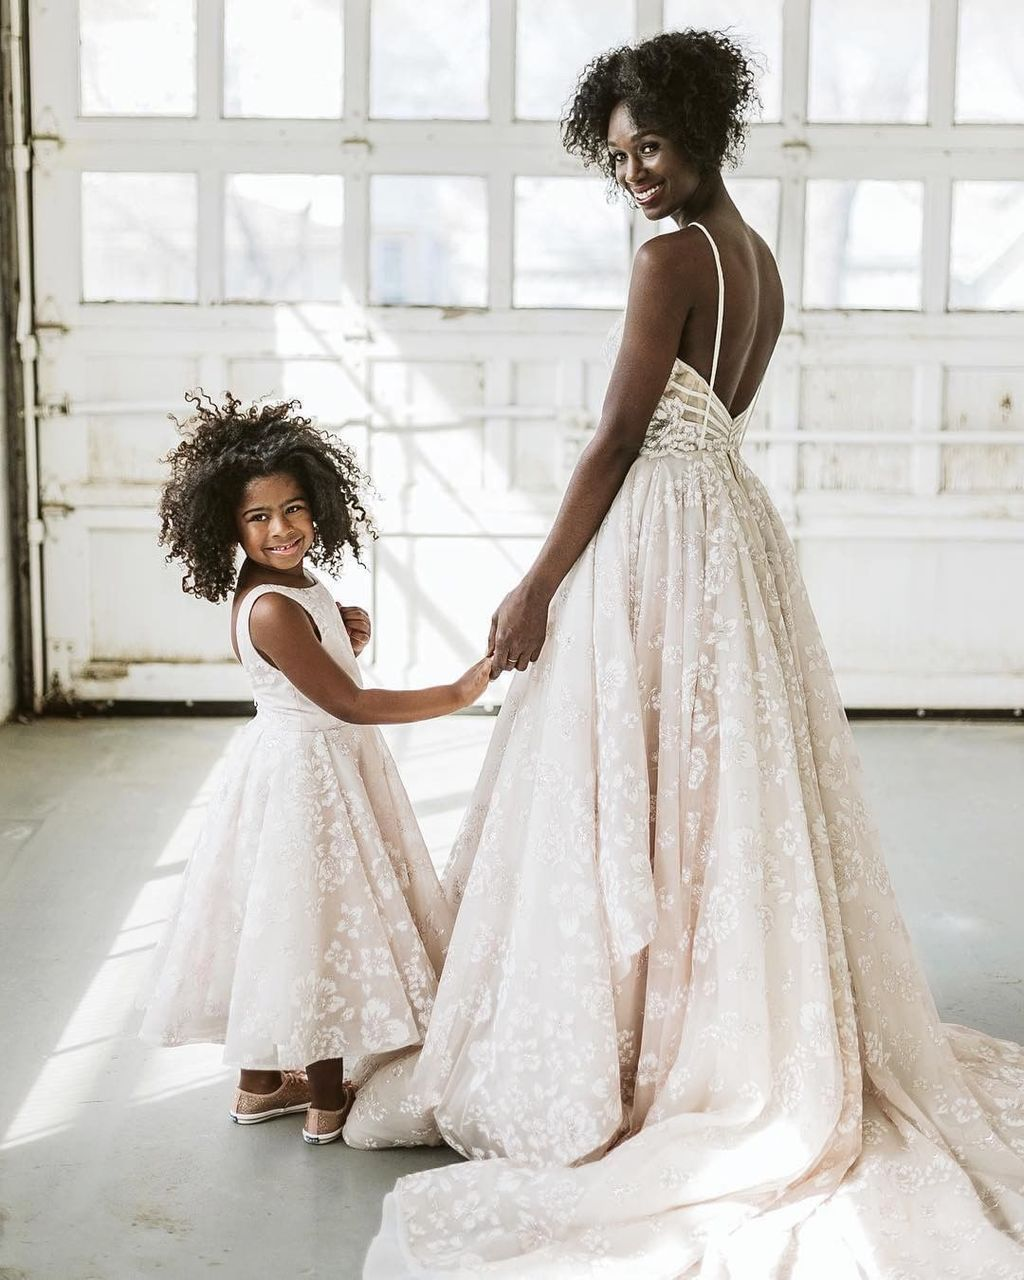 27 Charming Flower Girl Dresses For Spring And Summer Flower Girl Dresses Tulle Flower Girl Dresses Flower Girl Dress Lace [ 1280 x 1024 Pixel ]